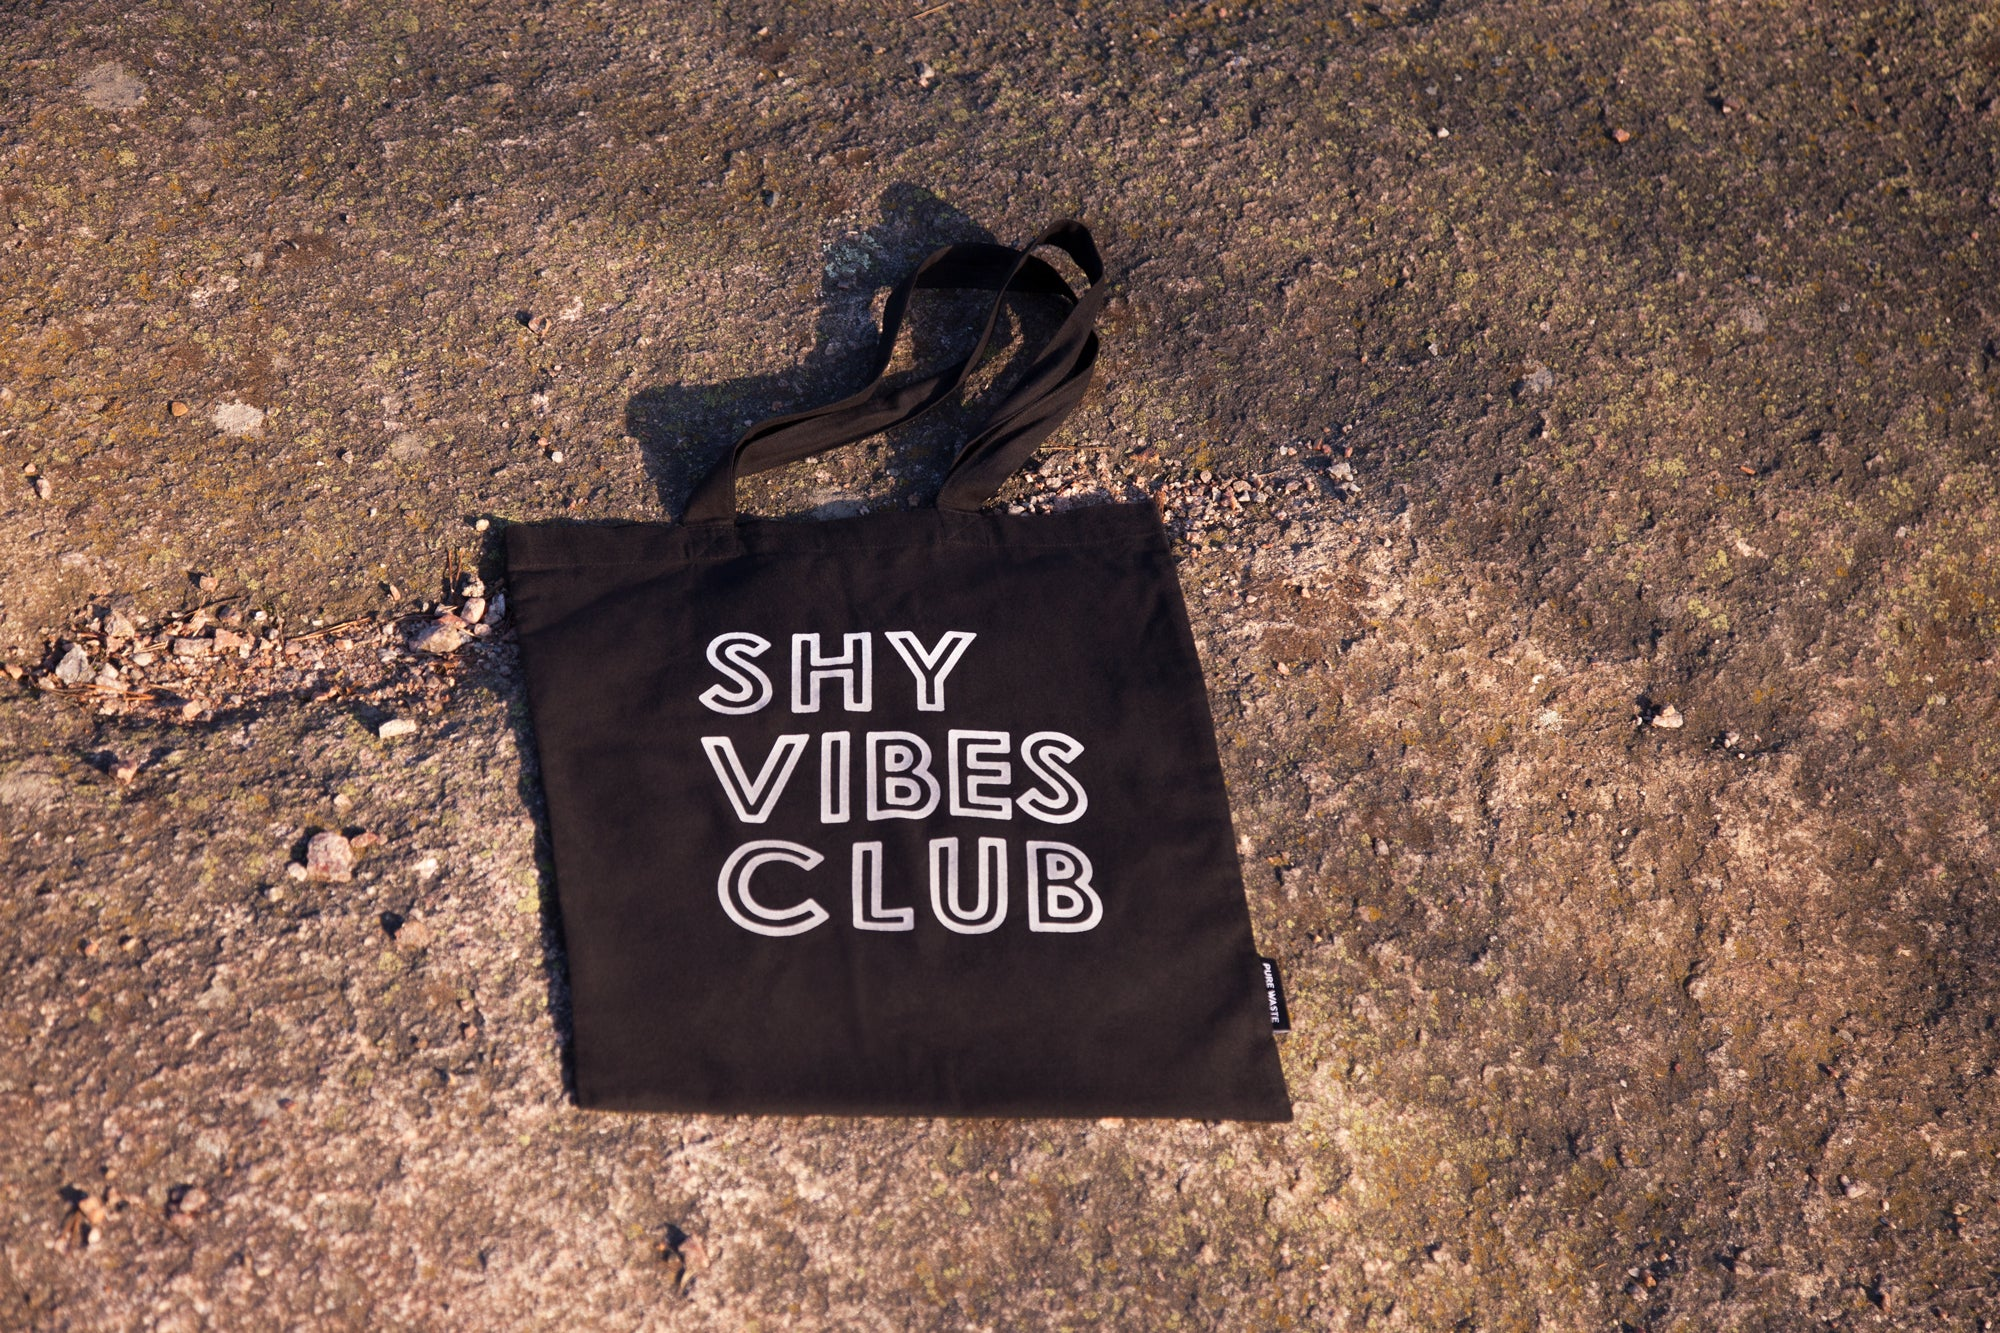 Shy Vibes Club pure waste textiles reflective tote bag